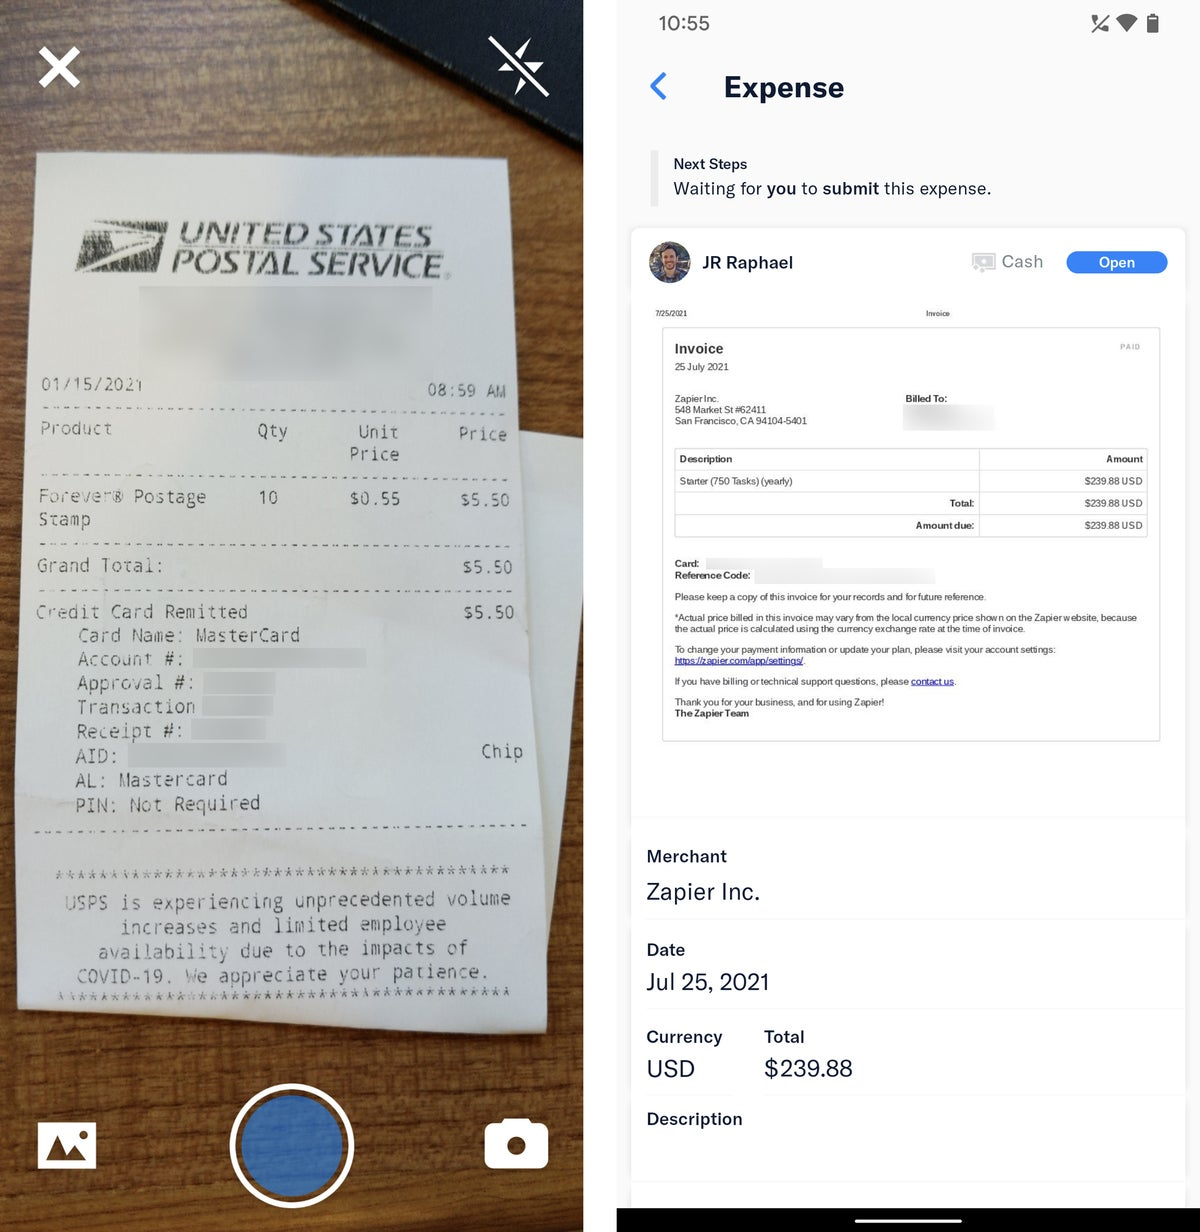 android travel apps expensify 2021